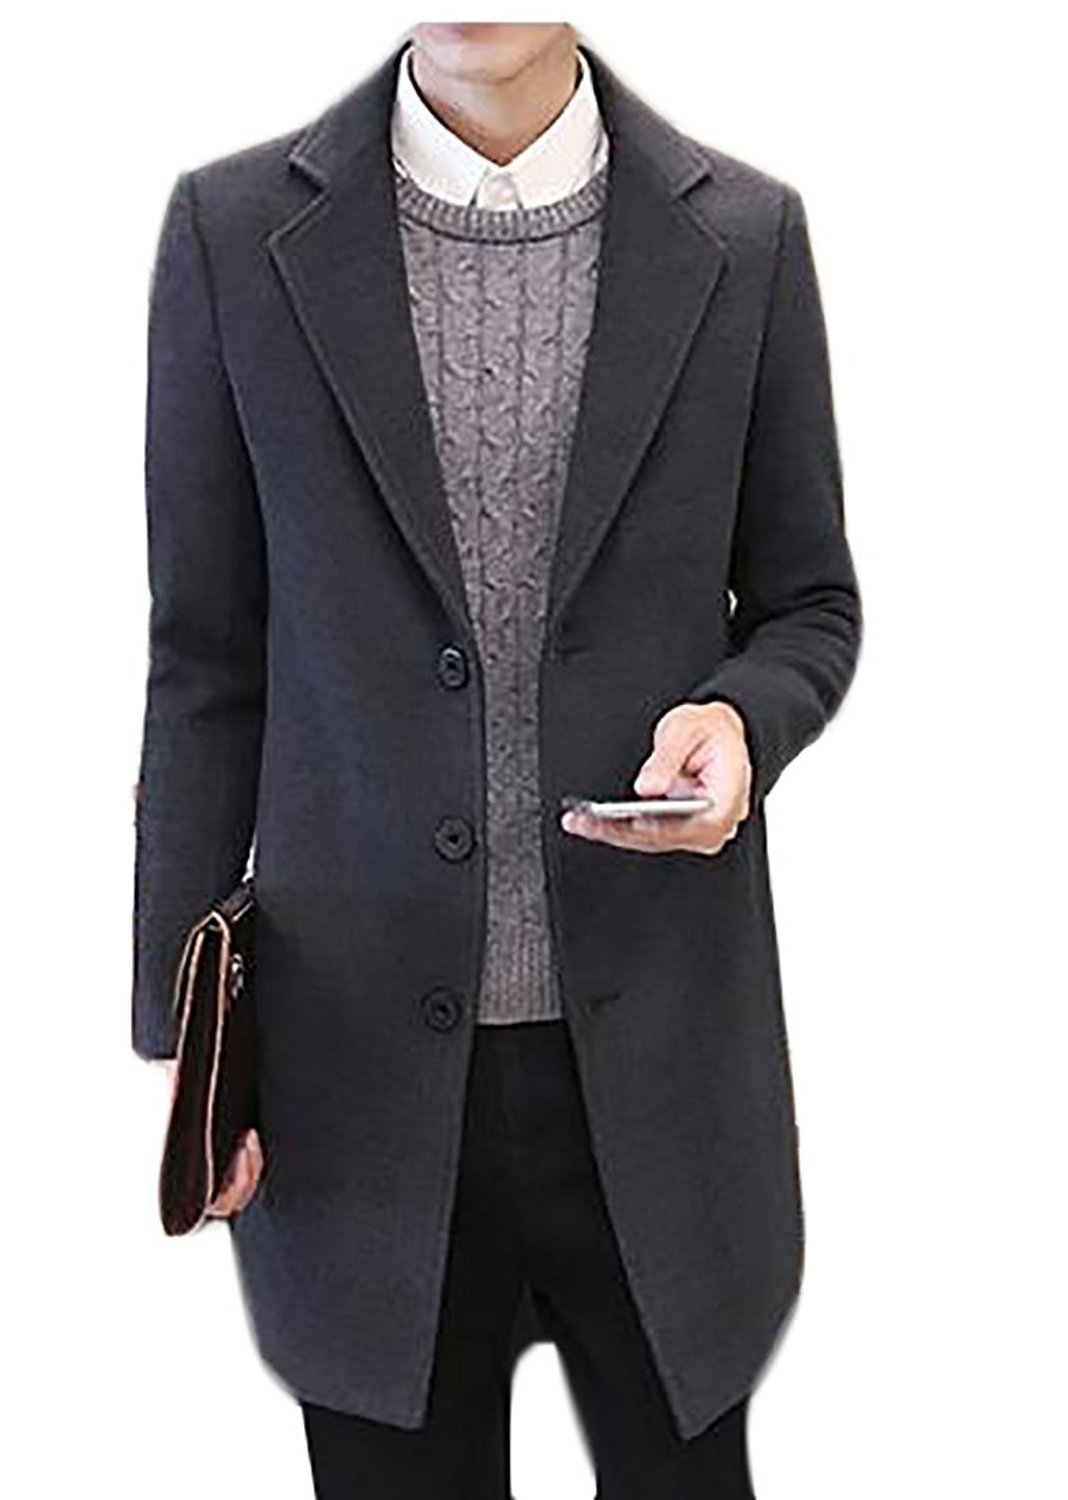 CBTLVSN Mens Slim Fit Solid Color Double Breasted Suits Jacket+Pant Two Pieces